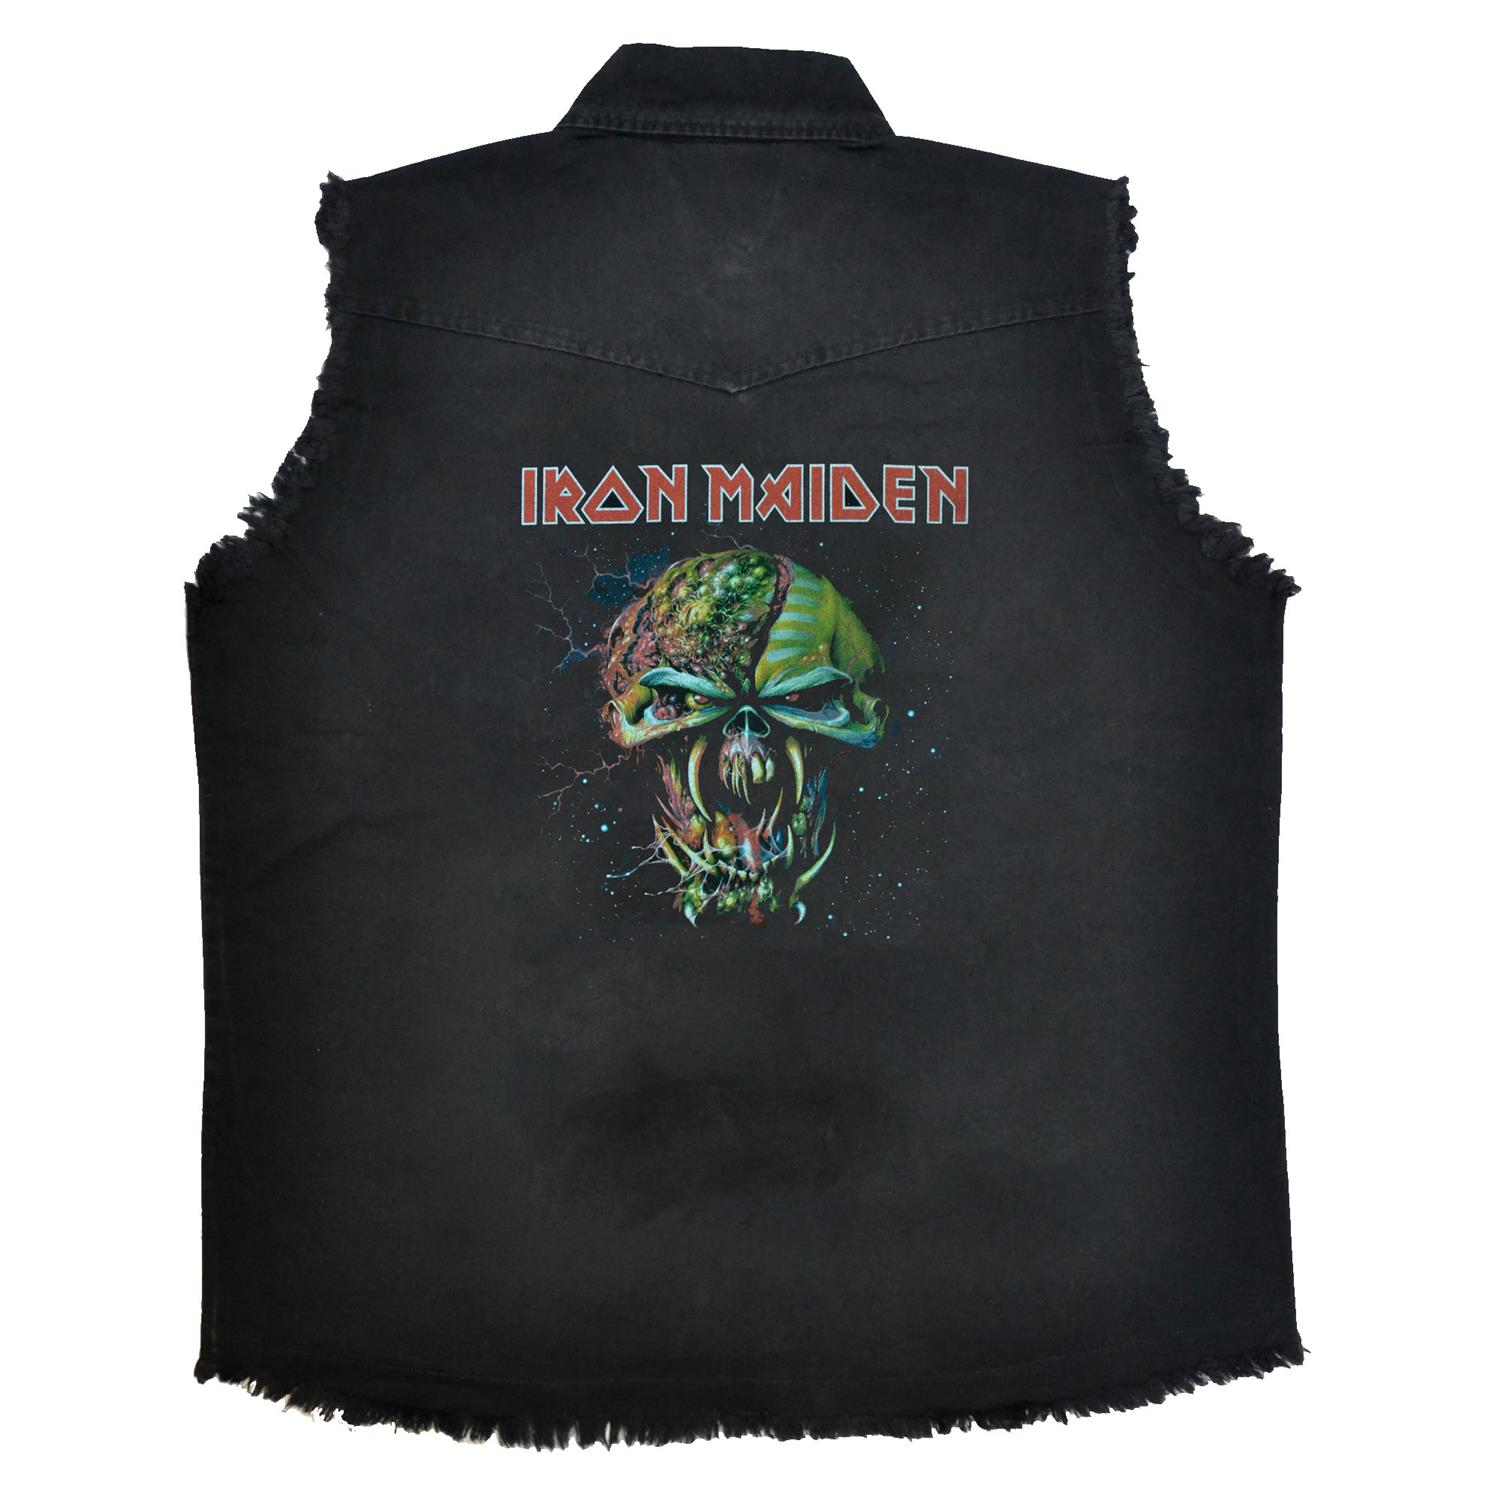 The Final Frontier Face (Import) Vest